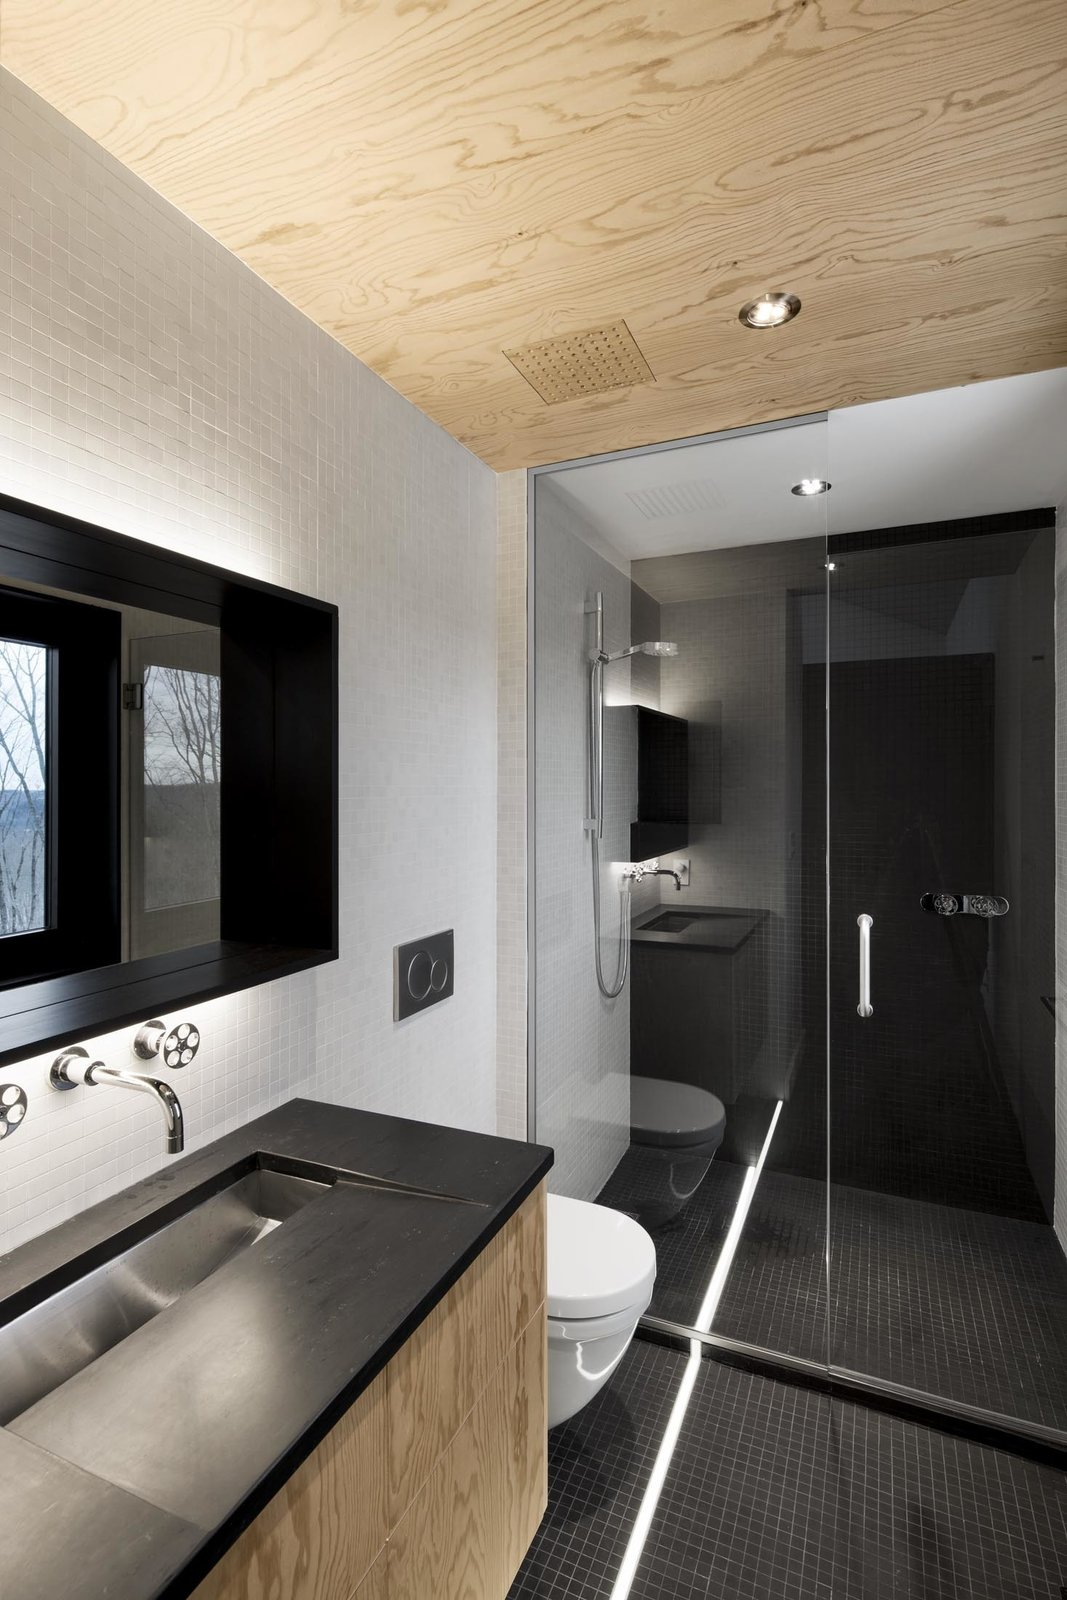 In the bathroom, the architects mounted a Kohler sink on a sloped, custom-slate countertop. Since the stone doesn't hold up well in water, the architect switched to black mosaic tile in the shower. The faucets are from Cabano's Century series. Tagged: Bath Room, Ceramic Tile Floor, Undermount Sink, Full Shower, Ceiling Lighting, and Enclosed Shower.  Photo 8 of 11 in Amazing Cantilevered Home in the Mountains